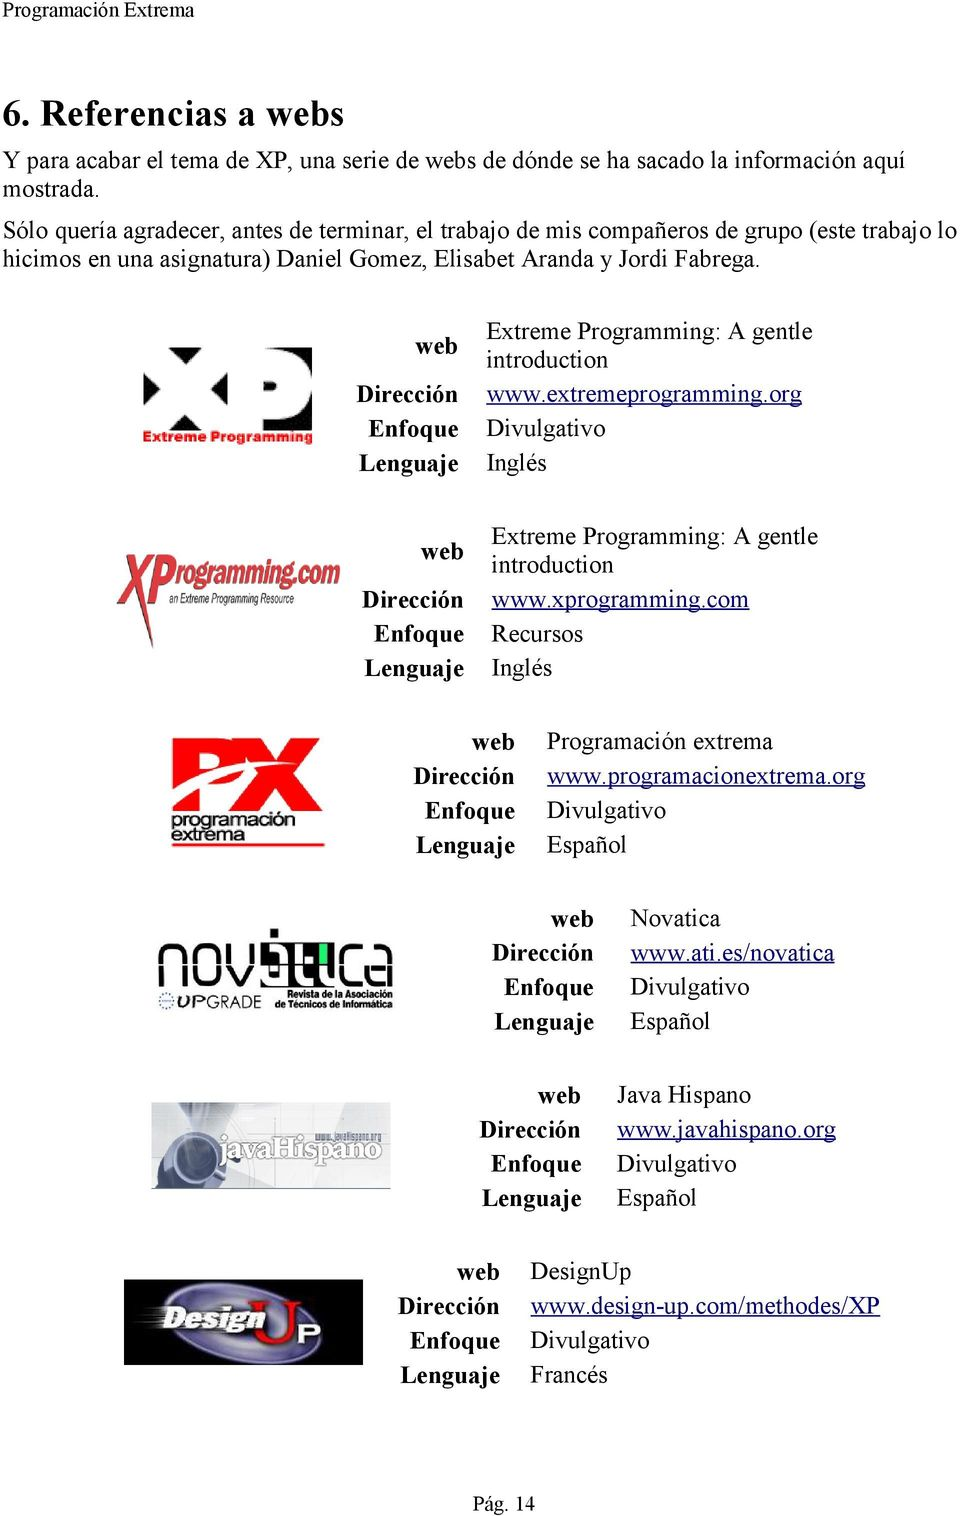 Extreme Programming: A gentle web introduction Dirección www.extremeprogramming.org Enfoque Divulgativo Lenguaje Inglés Extreme Programming: A gentle web introduction Dirección www.xprogramming.